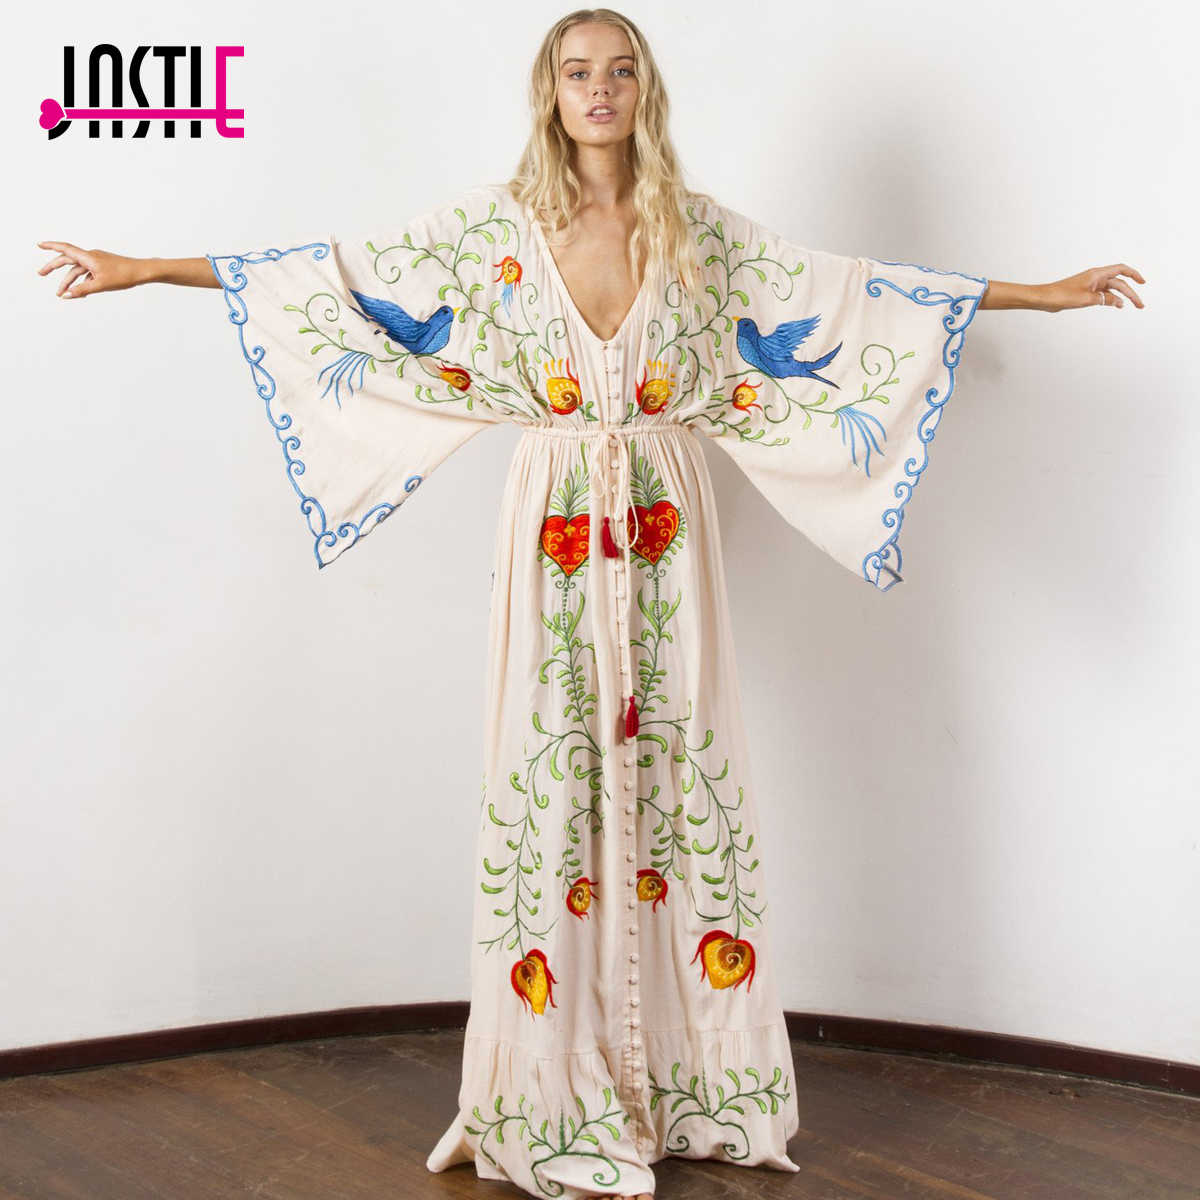 c4b7d5821cc85 Jastie Embroidered Women Maxi Dress V-Neck Batwing Sleeve Loose Plus Size  Summer Dresses Drawstring